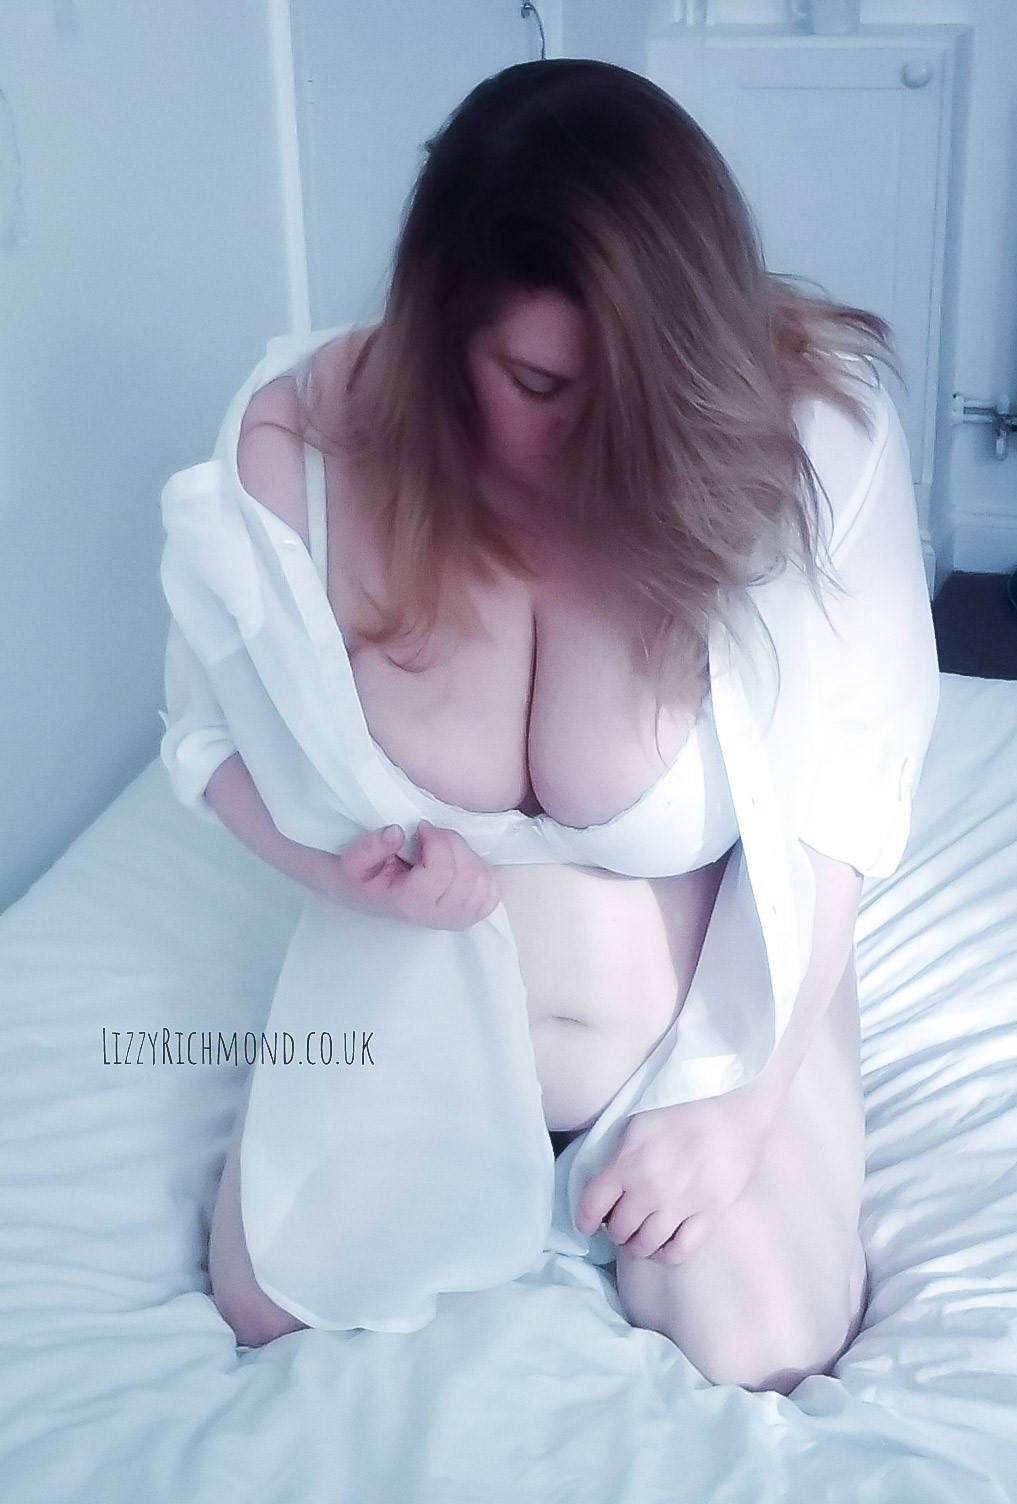 BBW escort Bournemouth